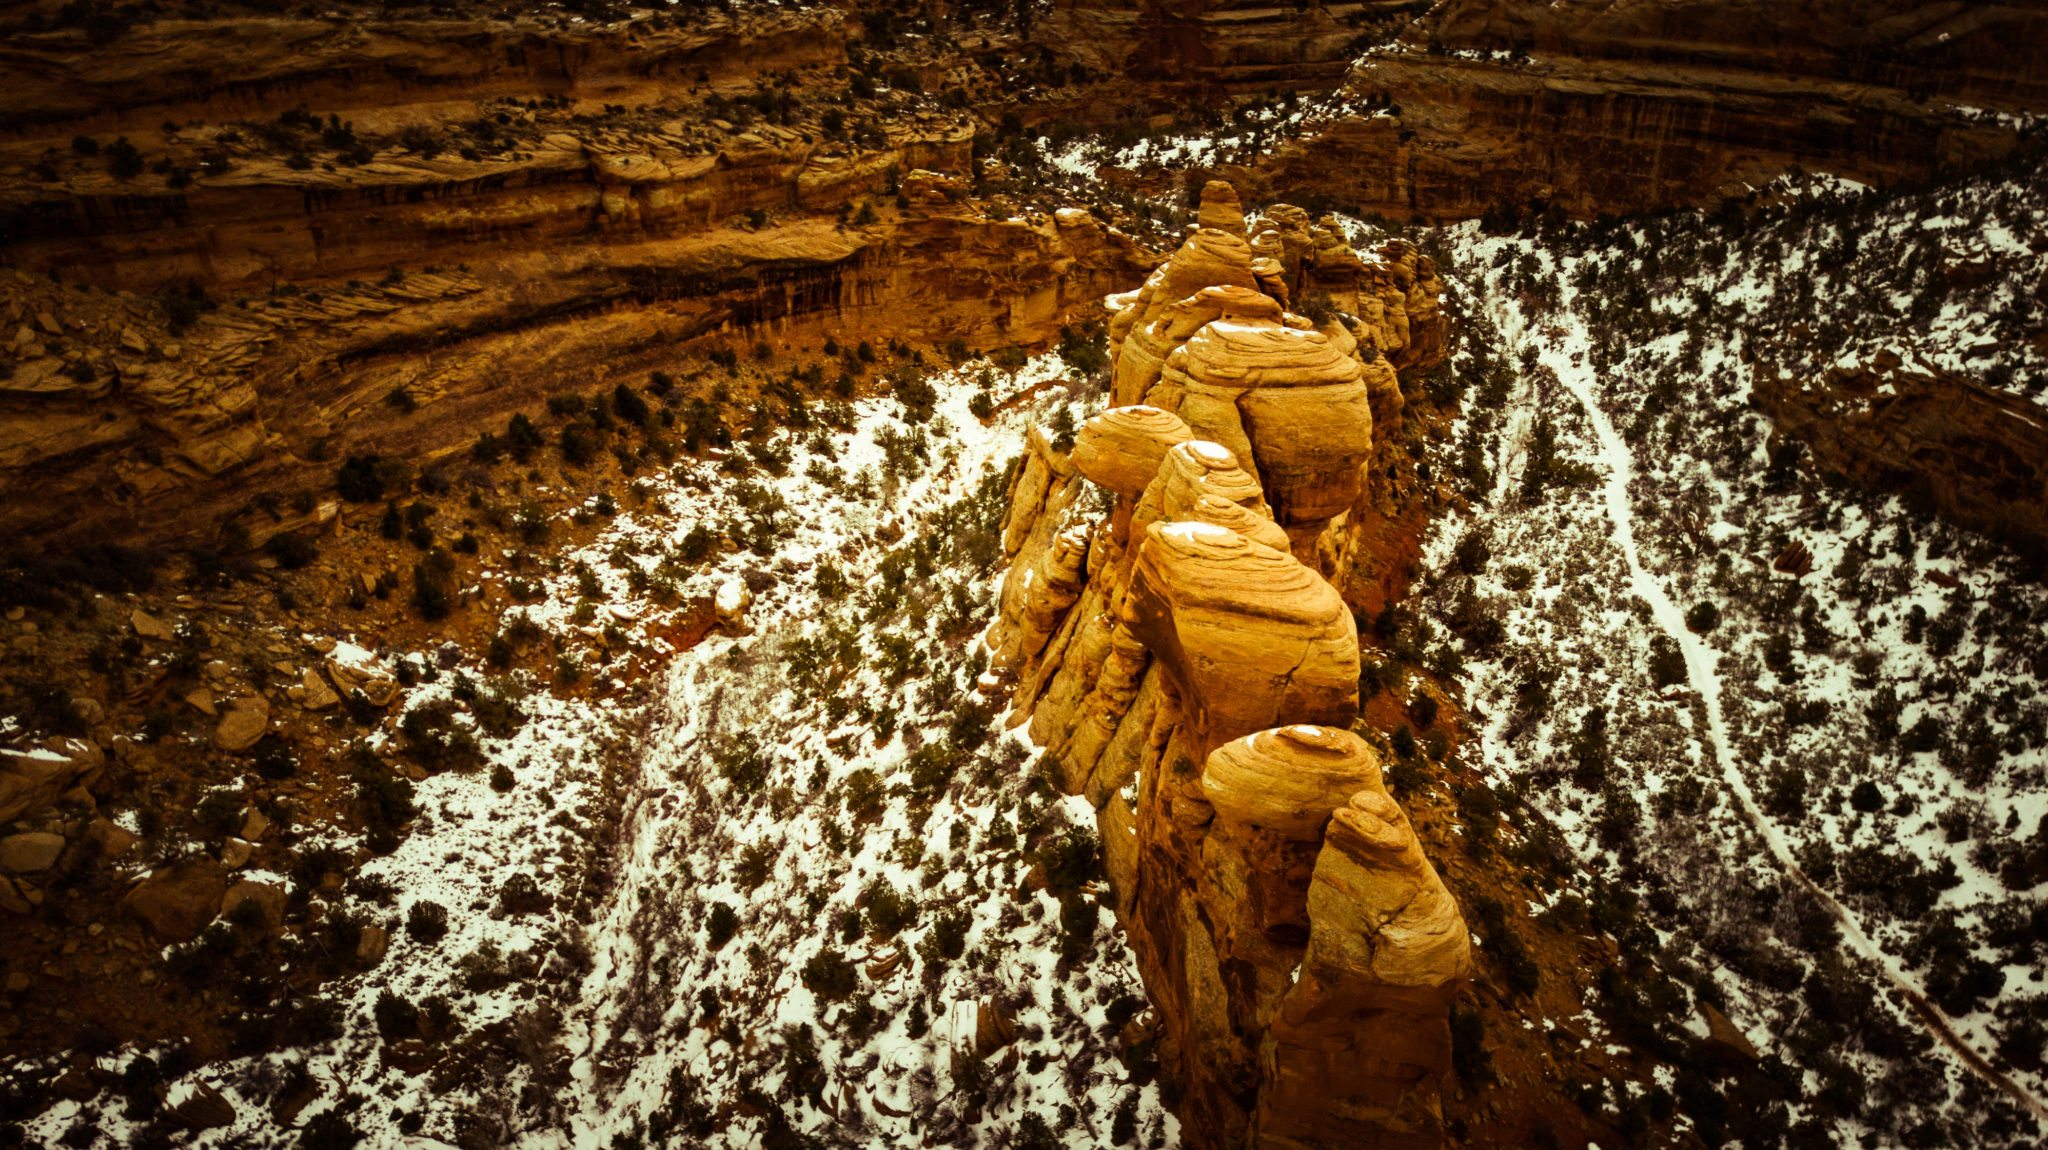 A hidden valley is revealed next to Rough Canyon